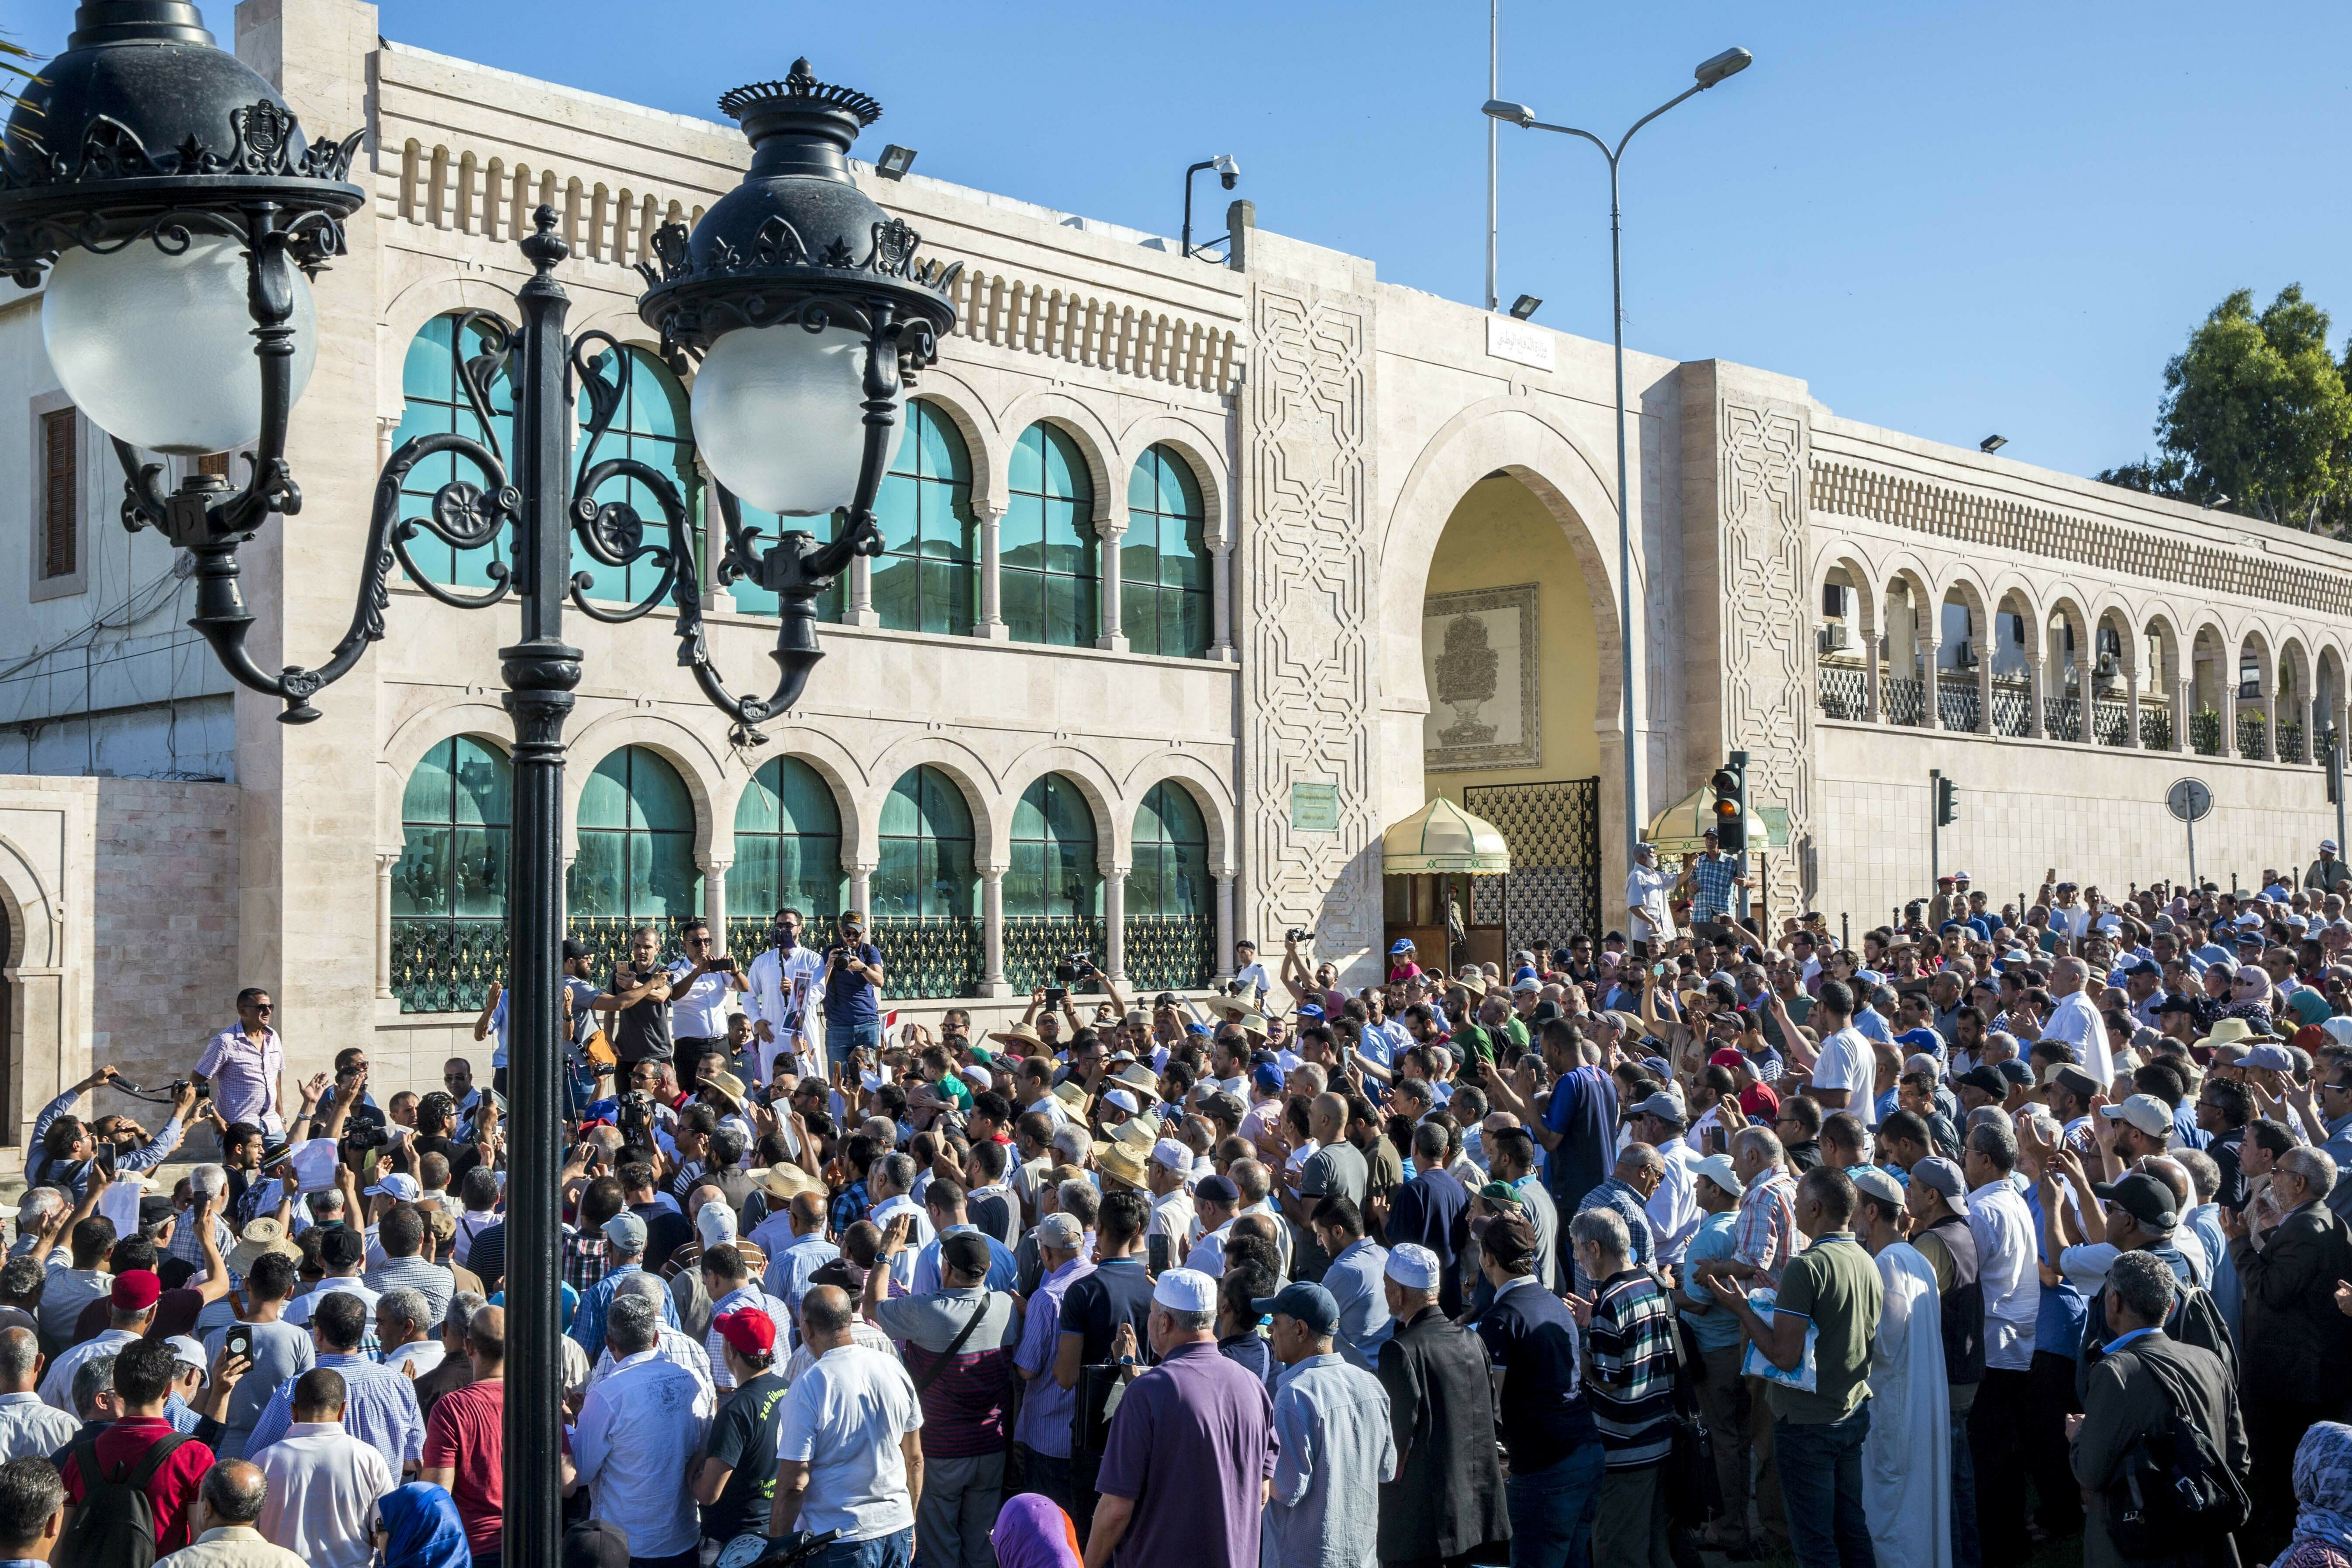 People chant slogans for ousted former Egyptian President Mohammed Morsi in Tunis, Tunisia. Tuesday, June 18, 2019. The former president, who was ousted by current President Abdel-Fattah el-Sissi in a military coup in 2013, collapsed in a courtroom in Egypt during trial on Monday and died. (AP Photo/Hassene Dridi)